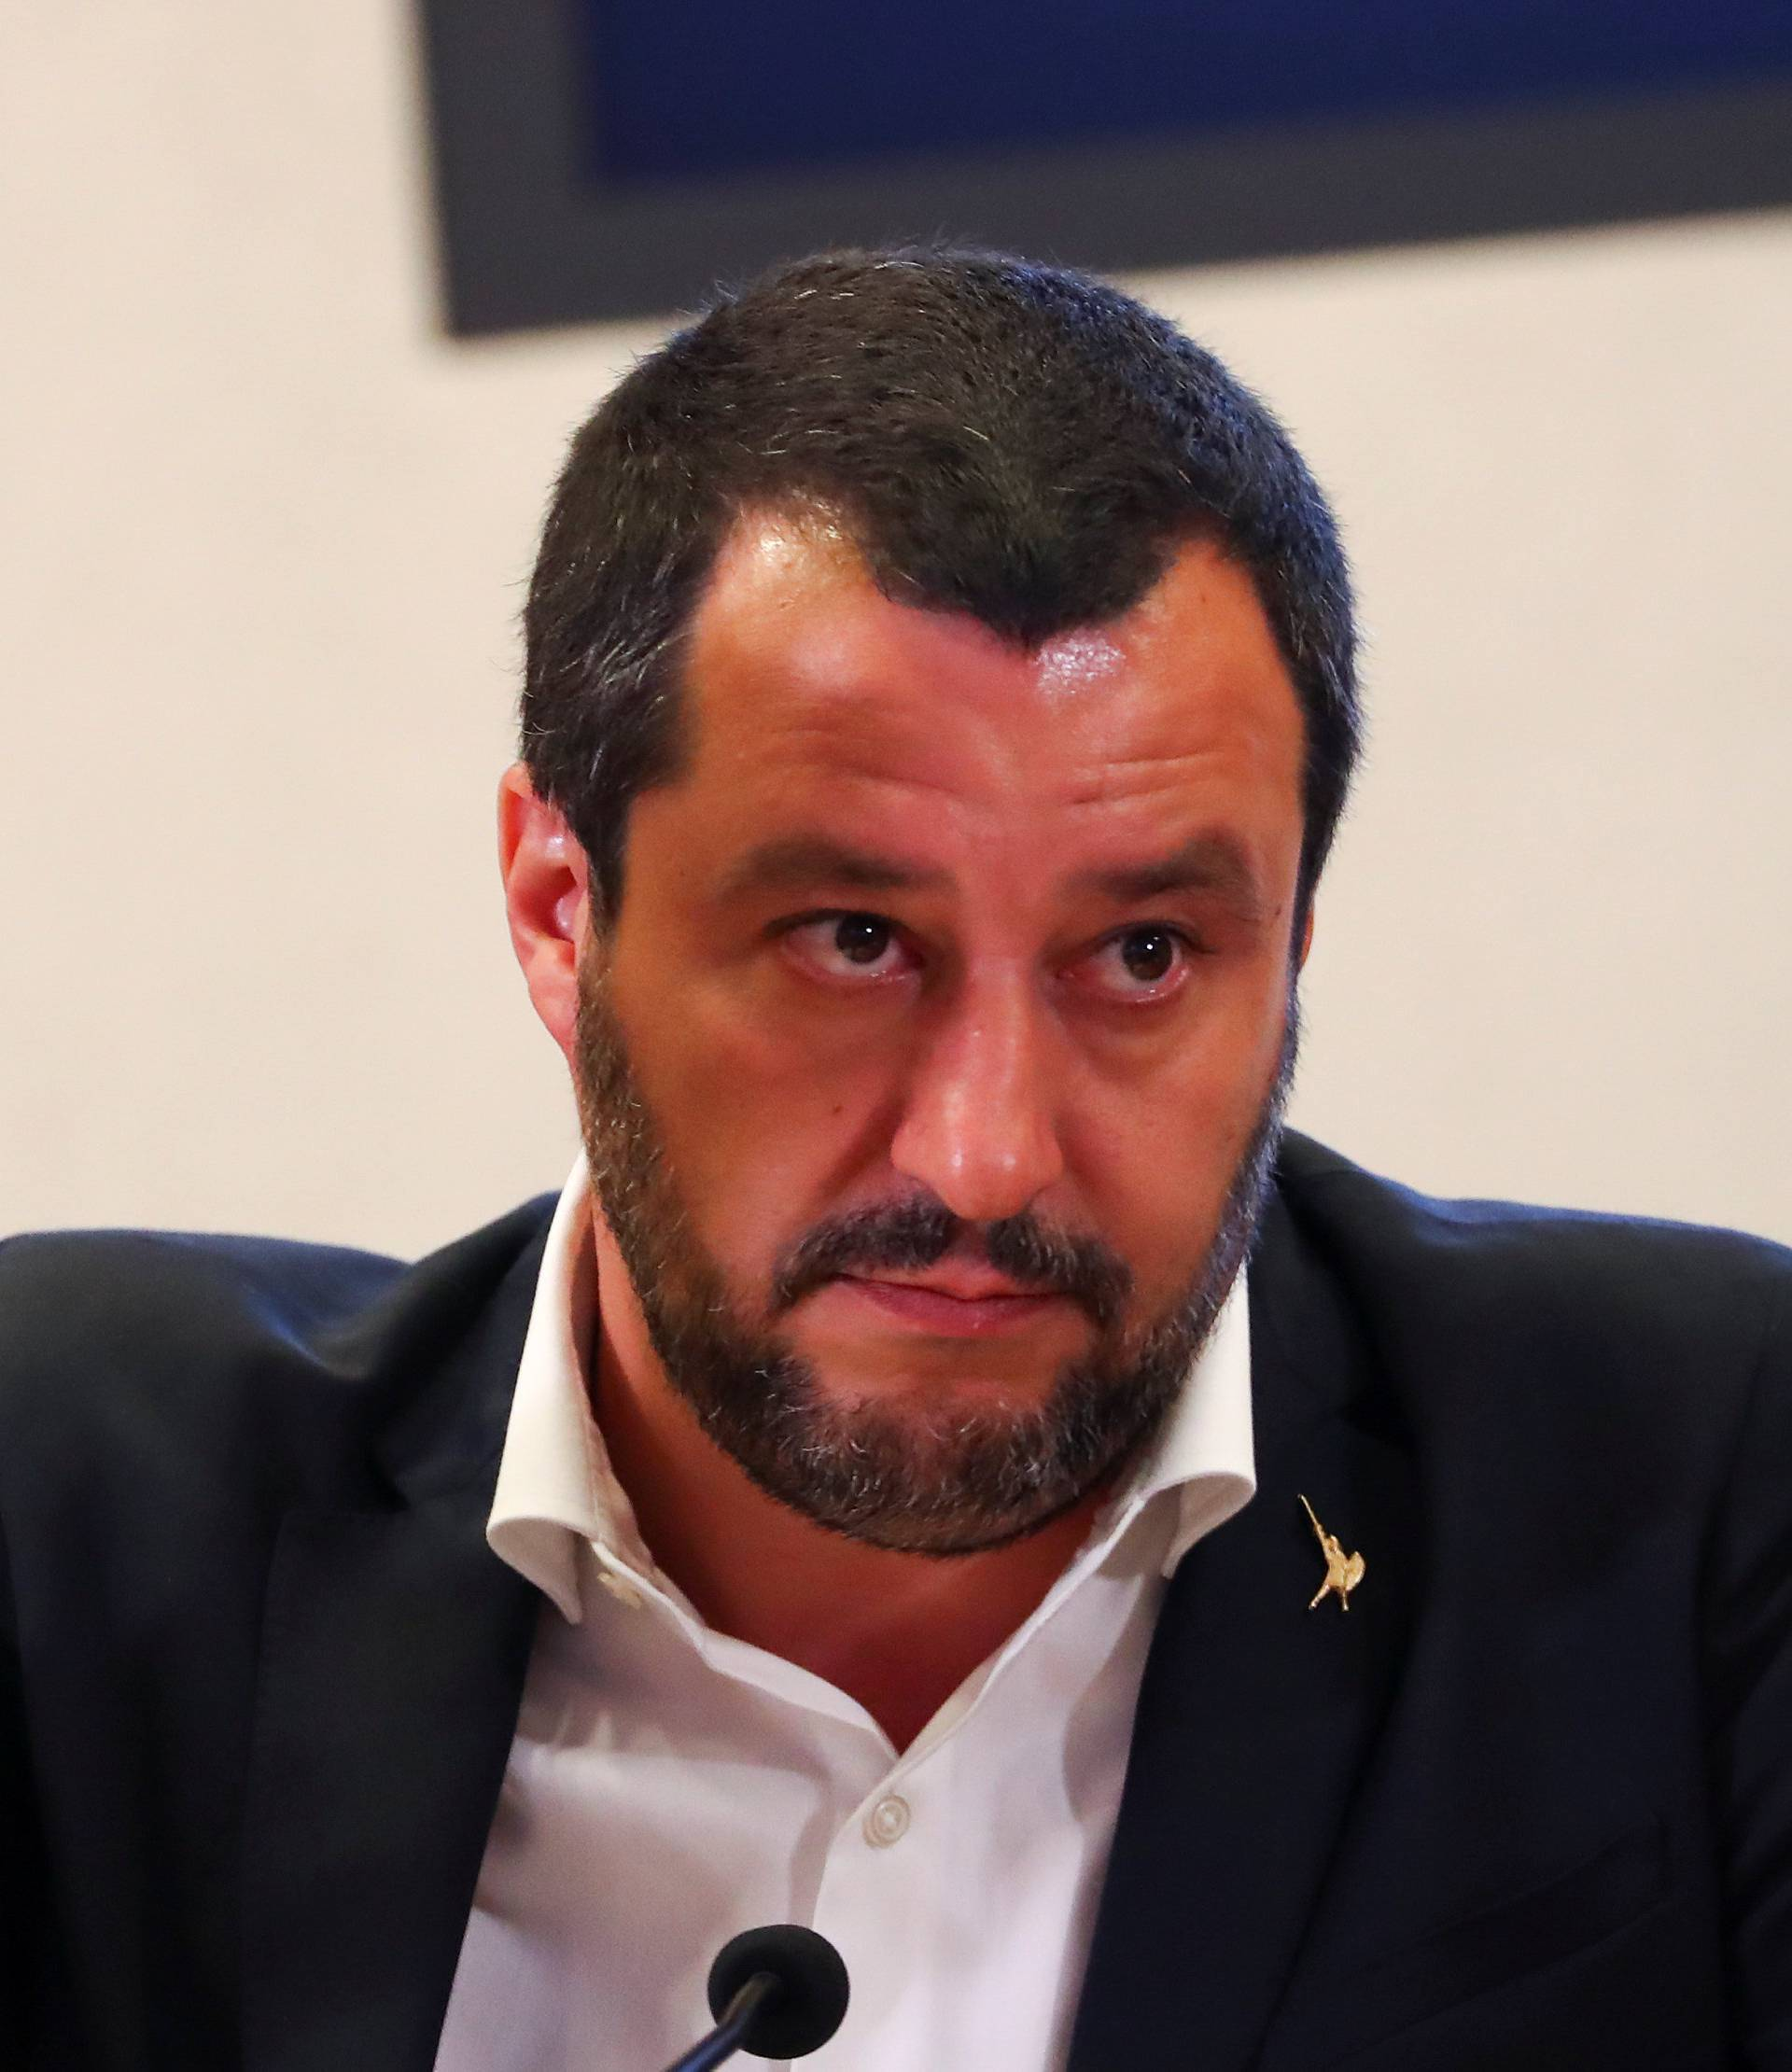 Italian Interior Minister Matteo Salvini gestures during a news conference with Libyan Deputy Prime Minister Ahmed Maiteeg in Rome